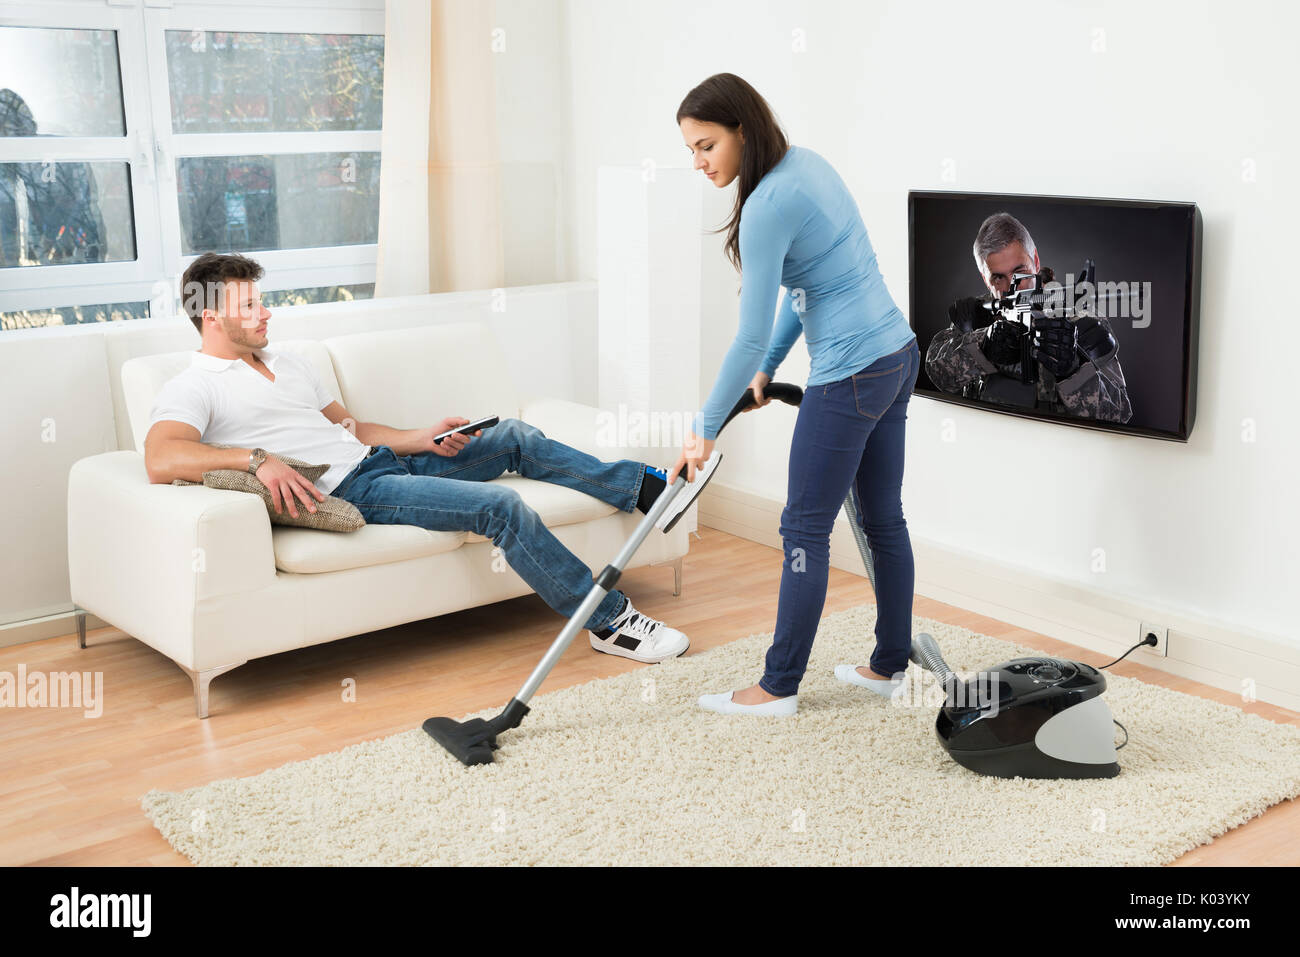 Frau Fliegender Teppich Man Vacuuming Sofa Woman Using Stockfotos And Man Vacuuming